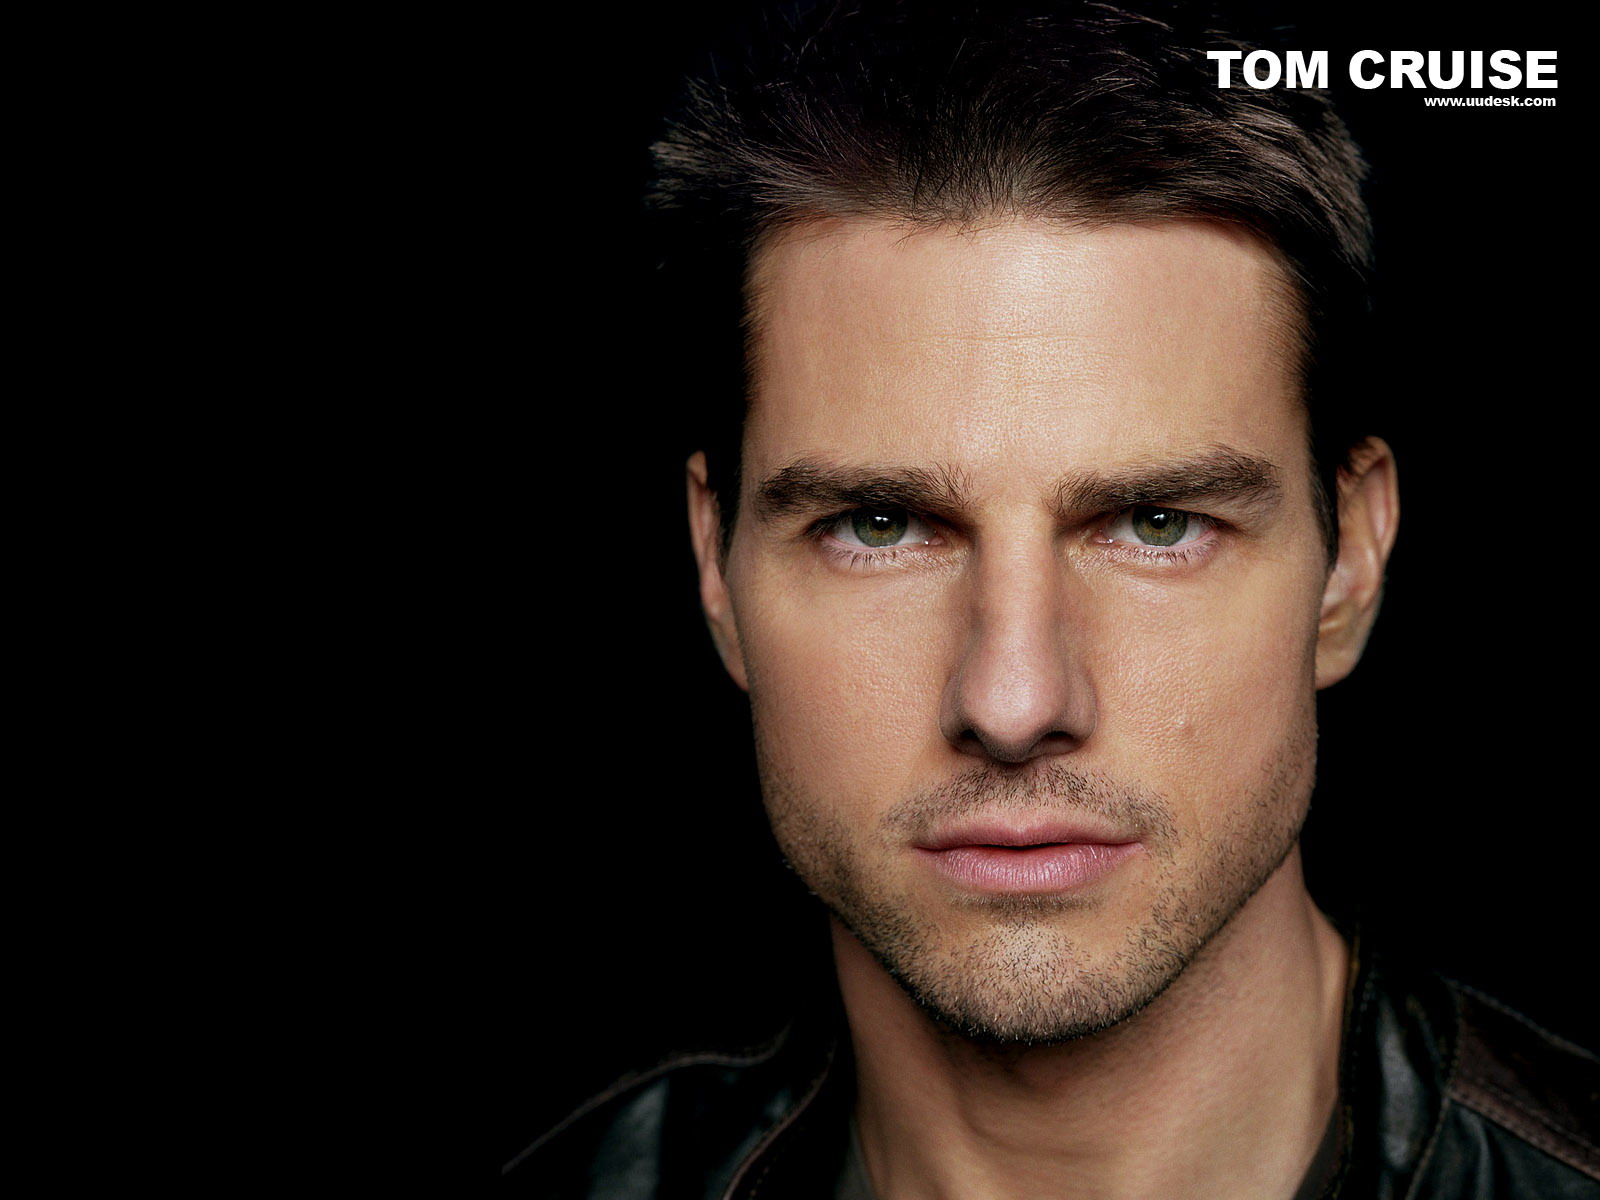 Tom Cruise Wallpaper 17